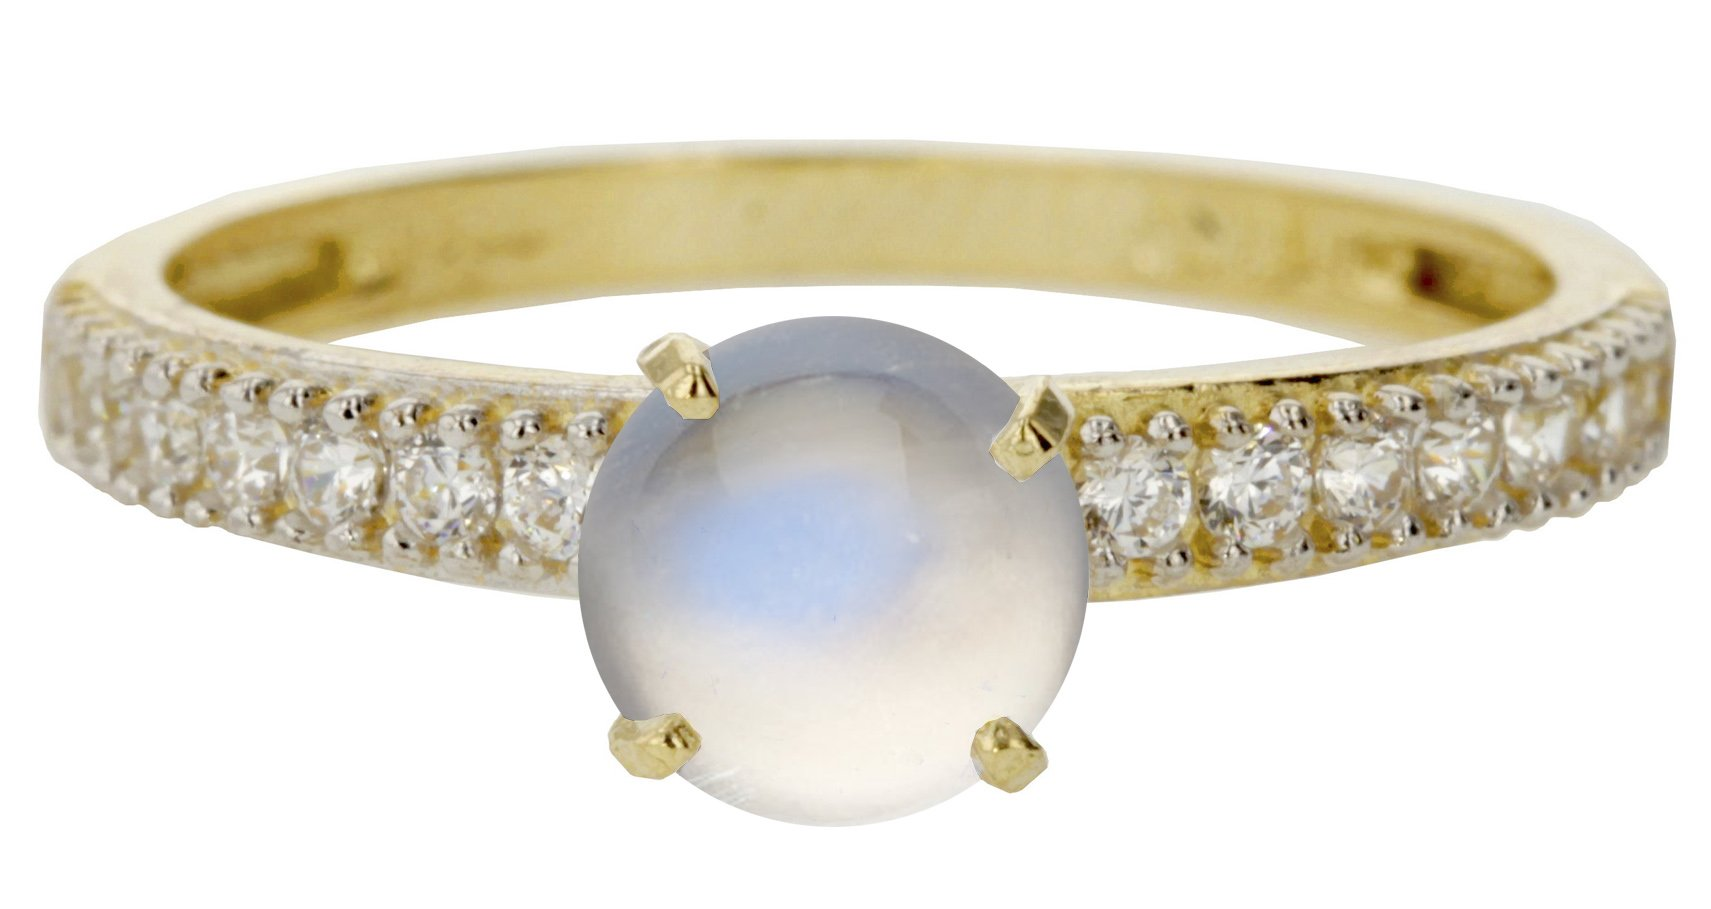 14k Yellow Gold Cabochon Natural Genuine White Moonstone Round Engagement Band Wedding Ring Size 7